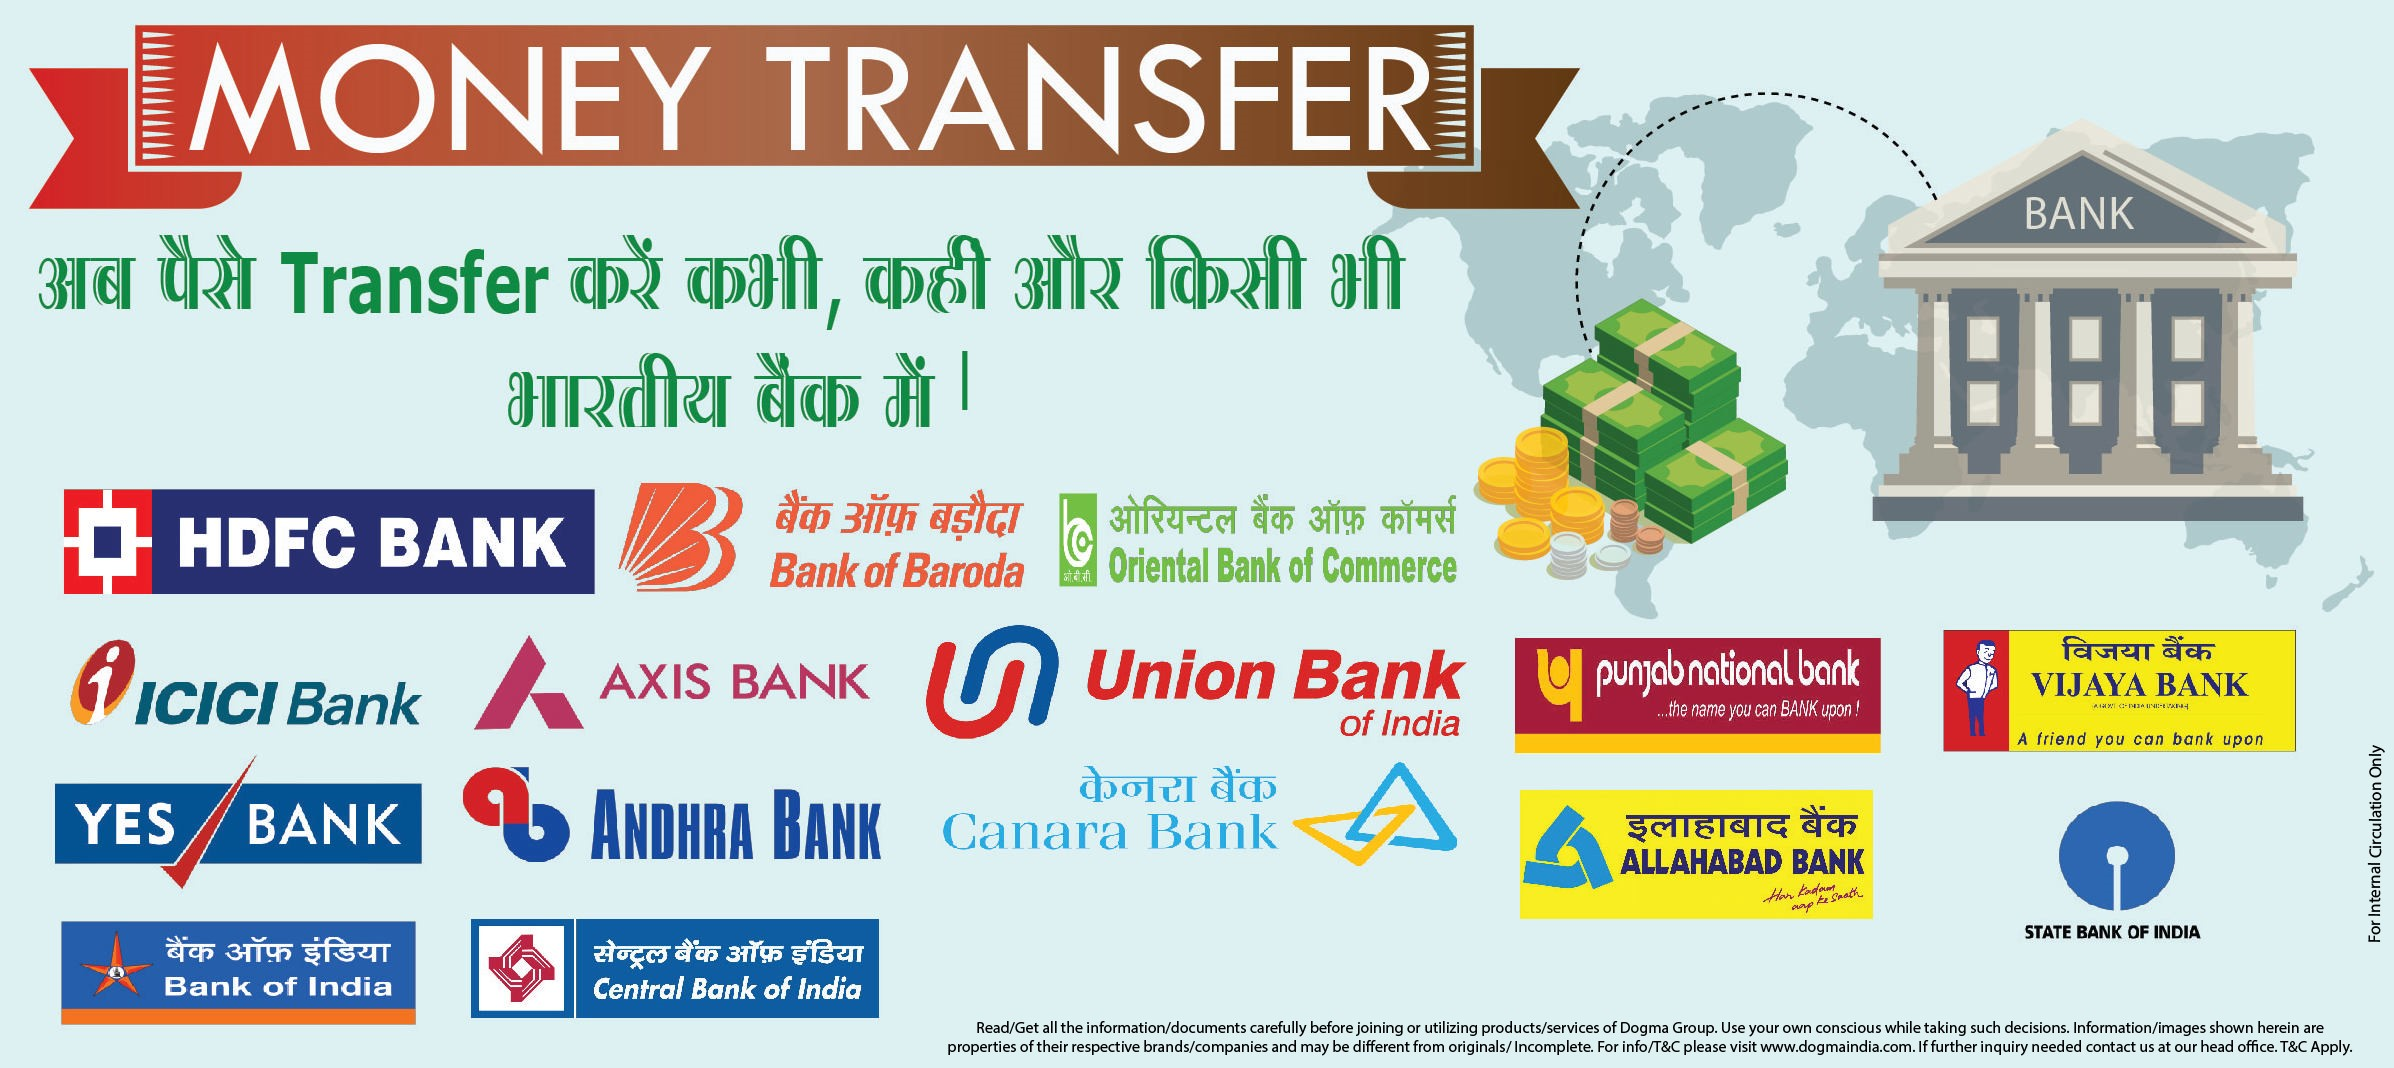 Money Transfer White Label Software Provider | DMR, DMT White Label